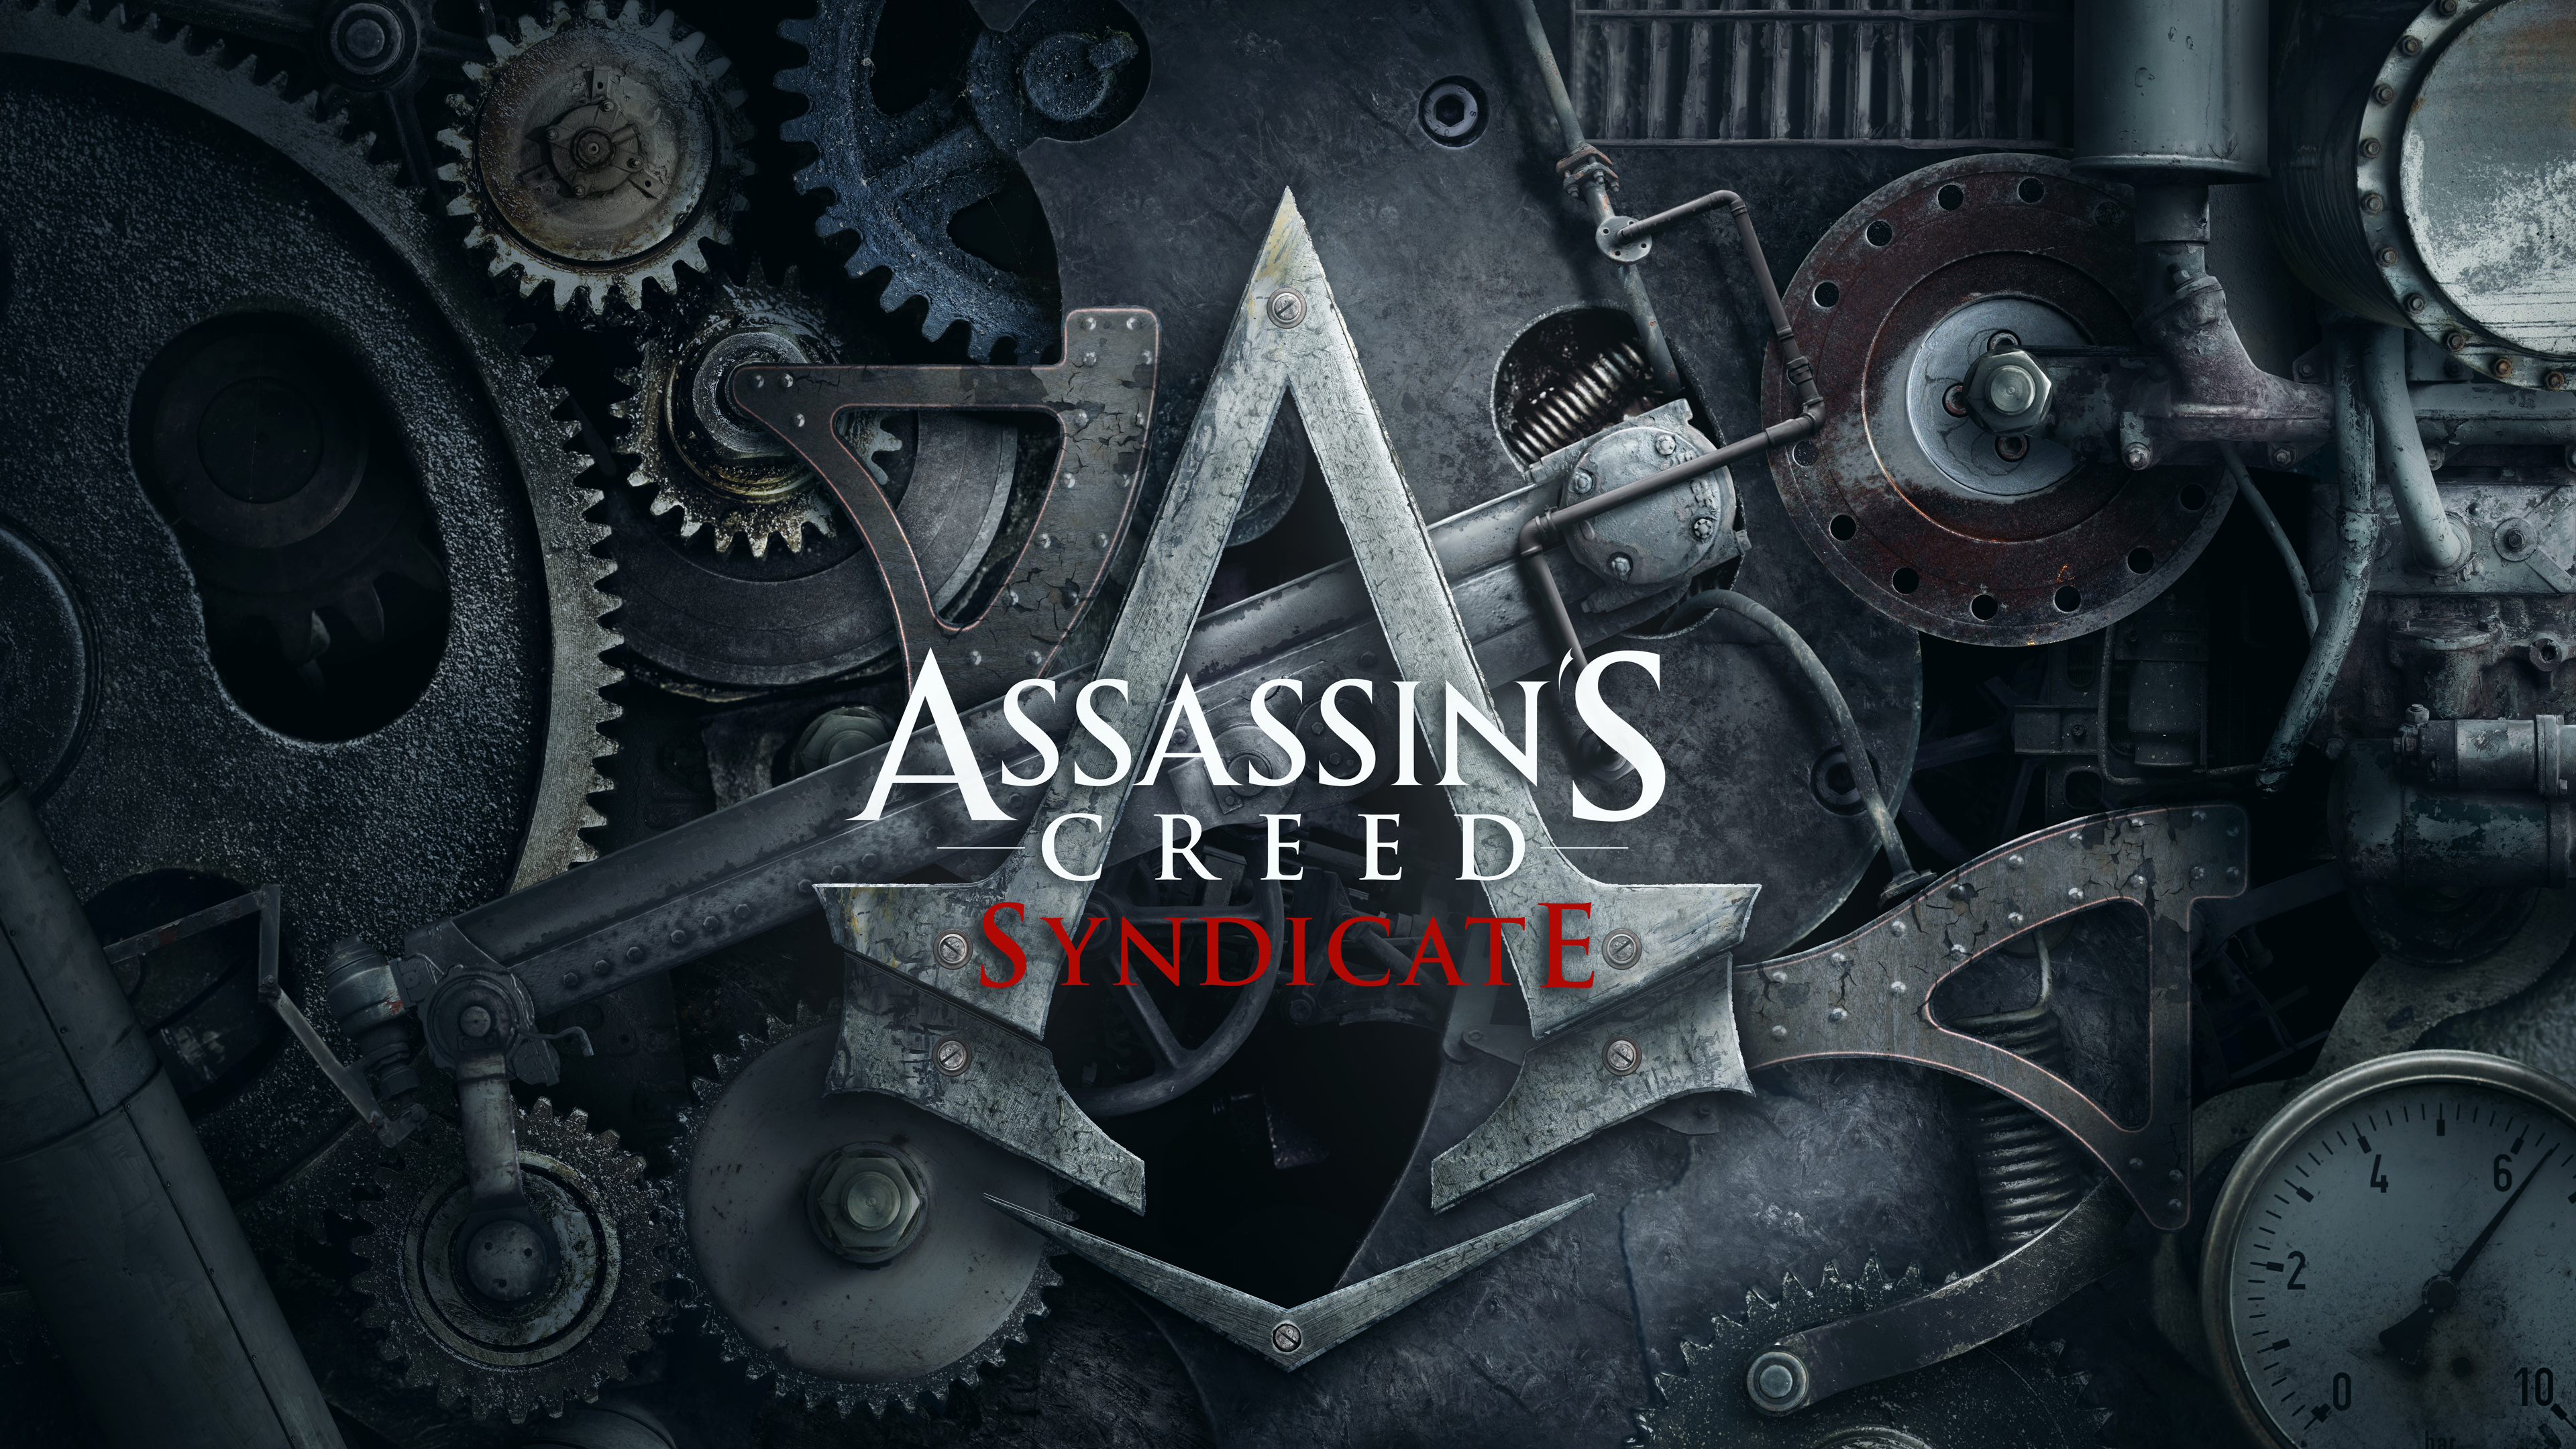 NVIDIA Bundles Assassin's Creed Syndicate with GTX 980/970